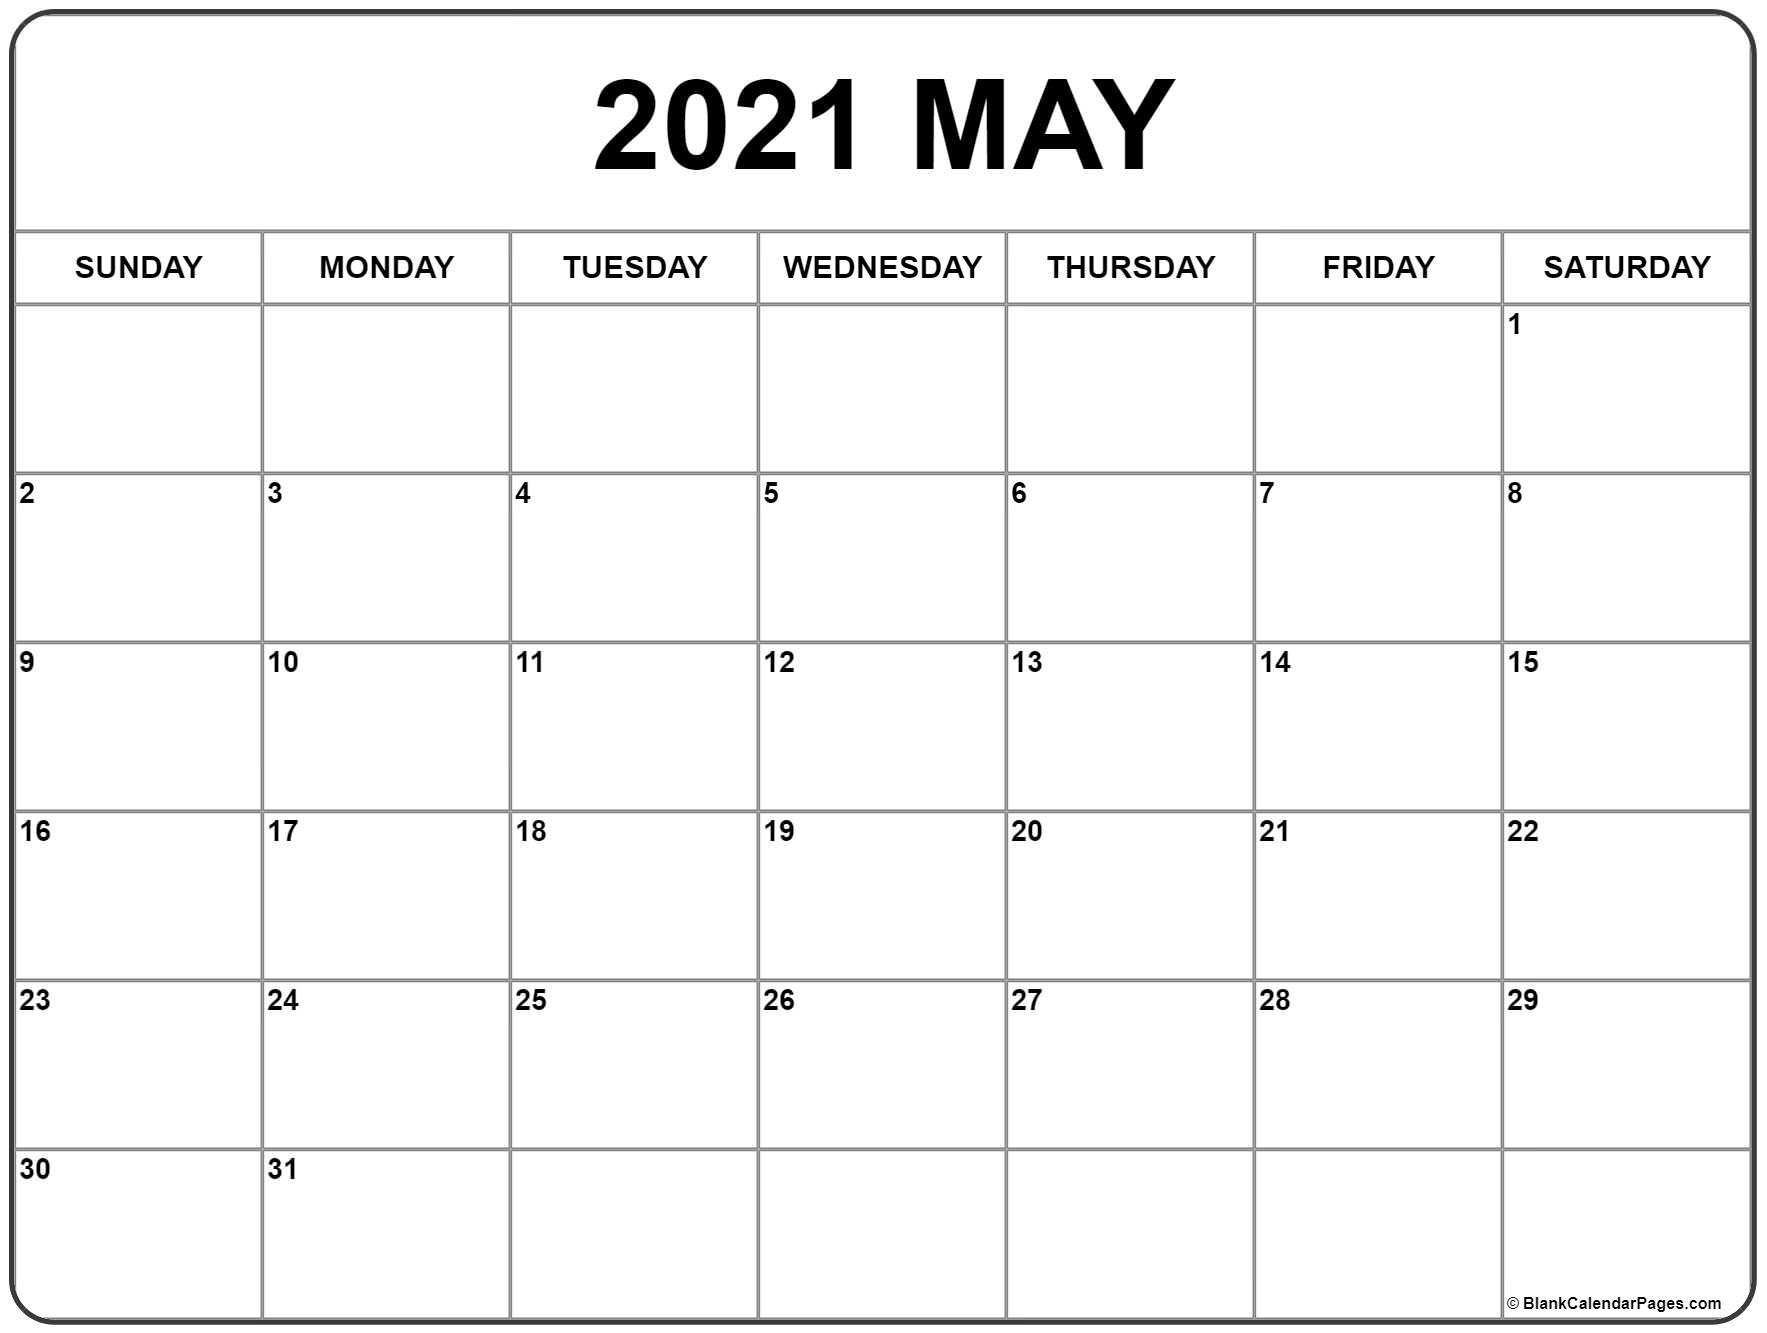 May 2021 Calendar With Notes